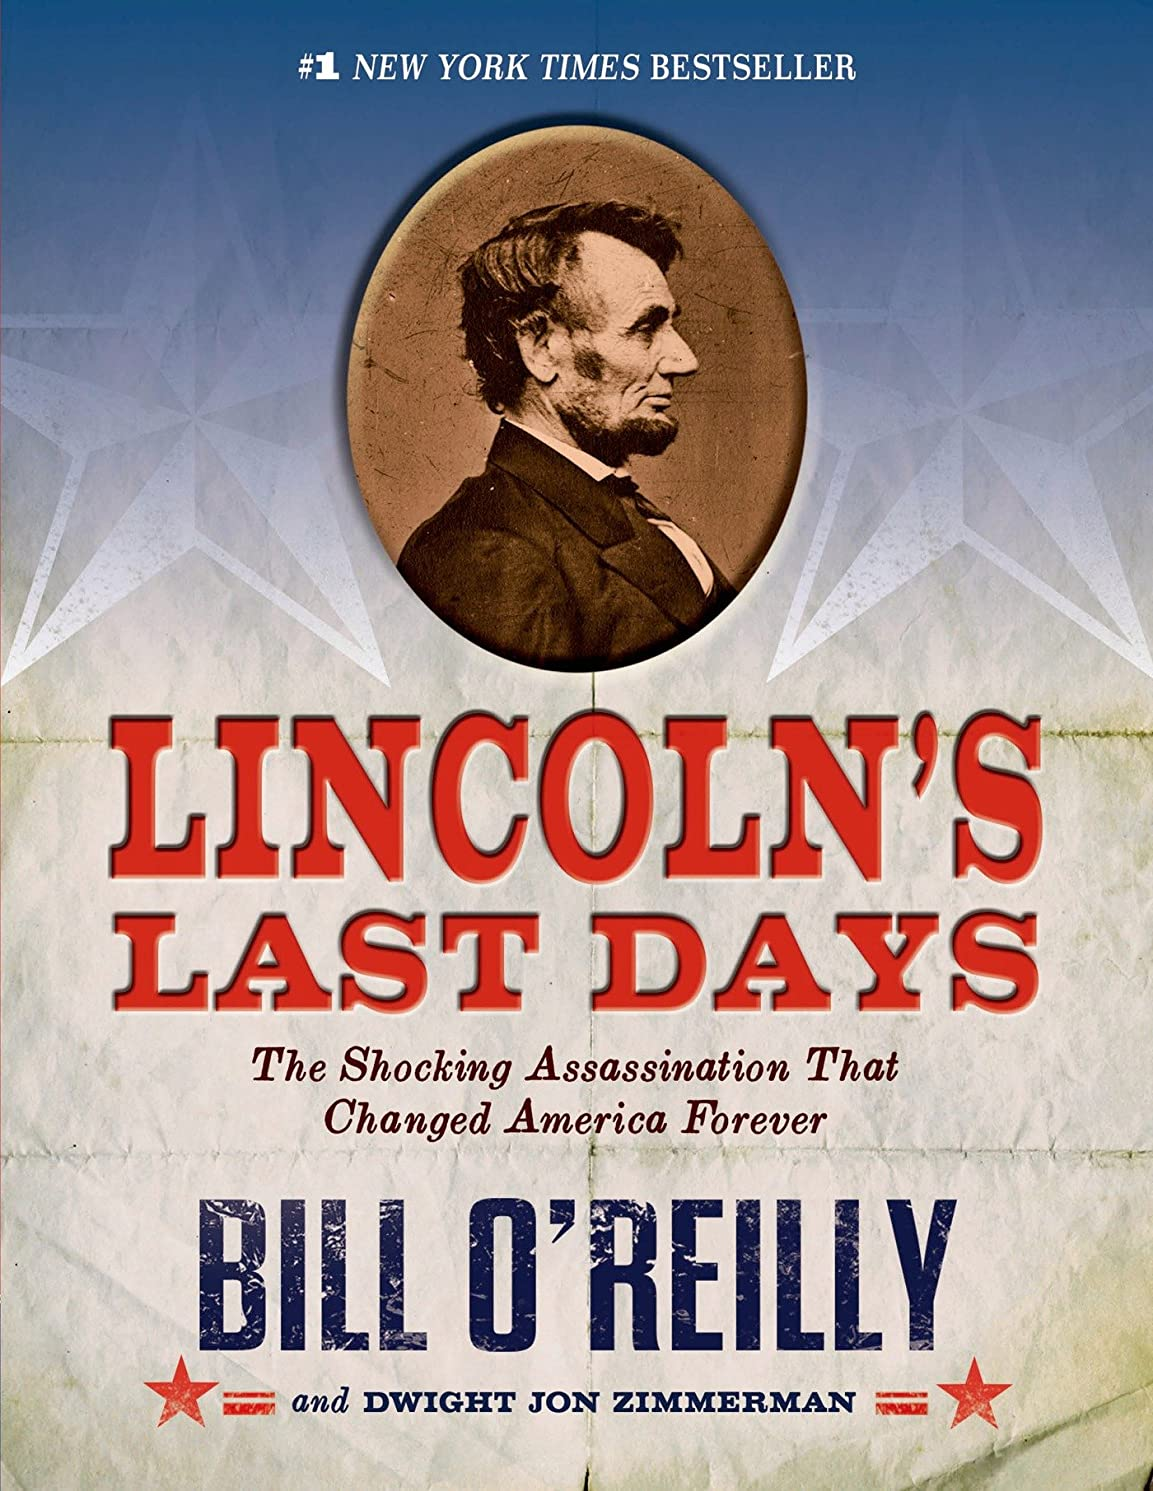 否定する神経障害テザーLincoln's Last Days: The Shocking Assassination that Changed America Forever (English Edition)